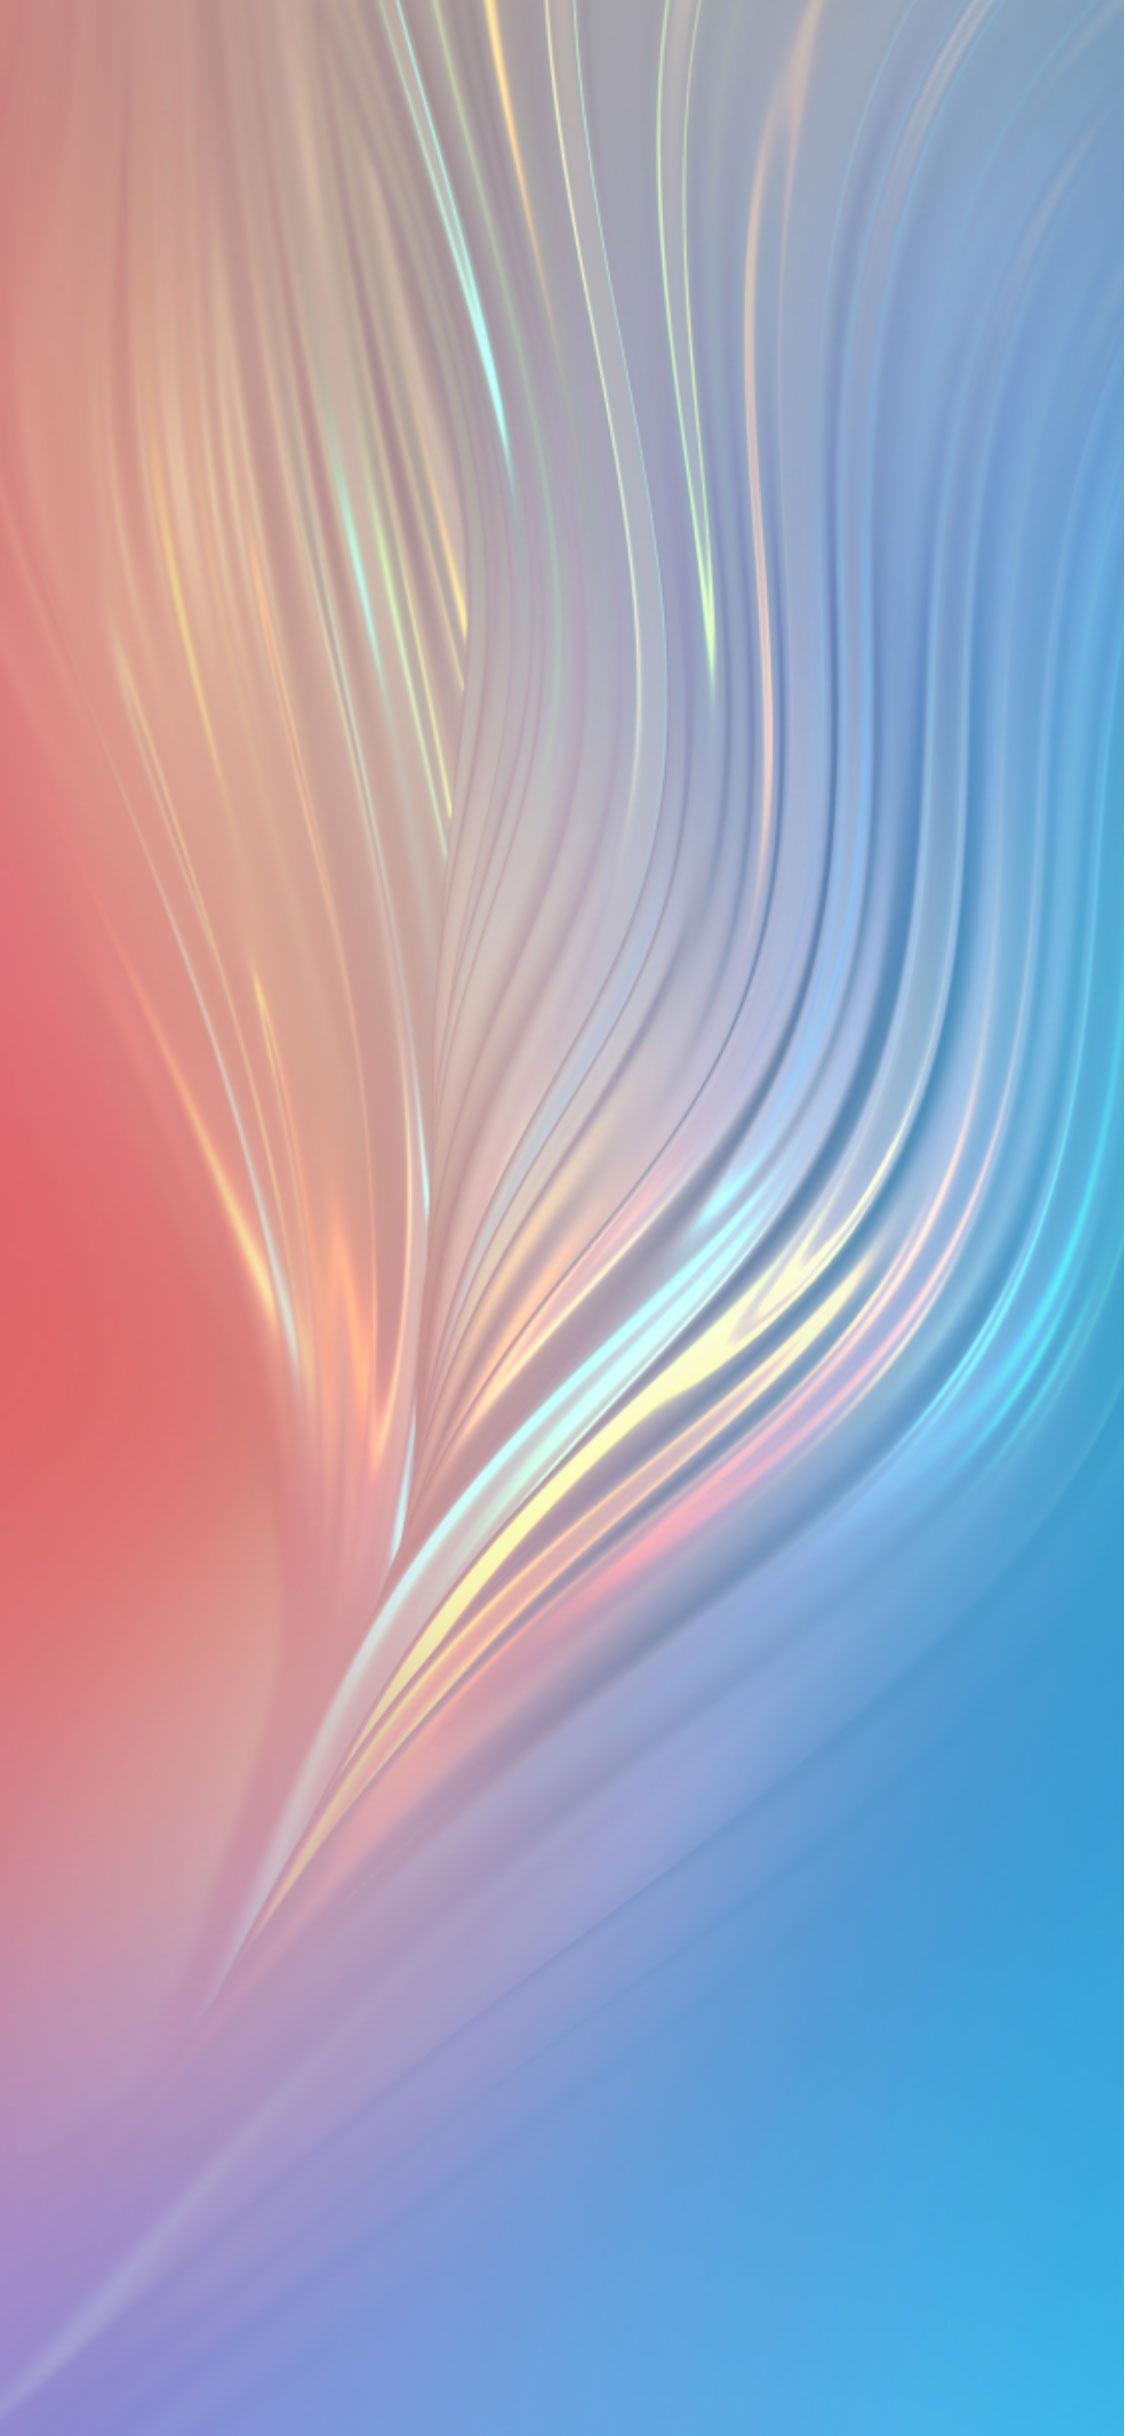 50+ best iphone x wallpapers & backgrounds